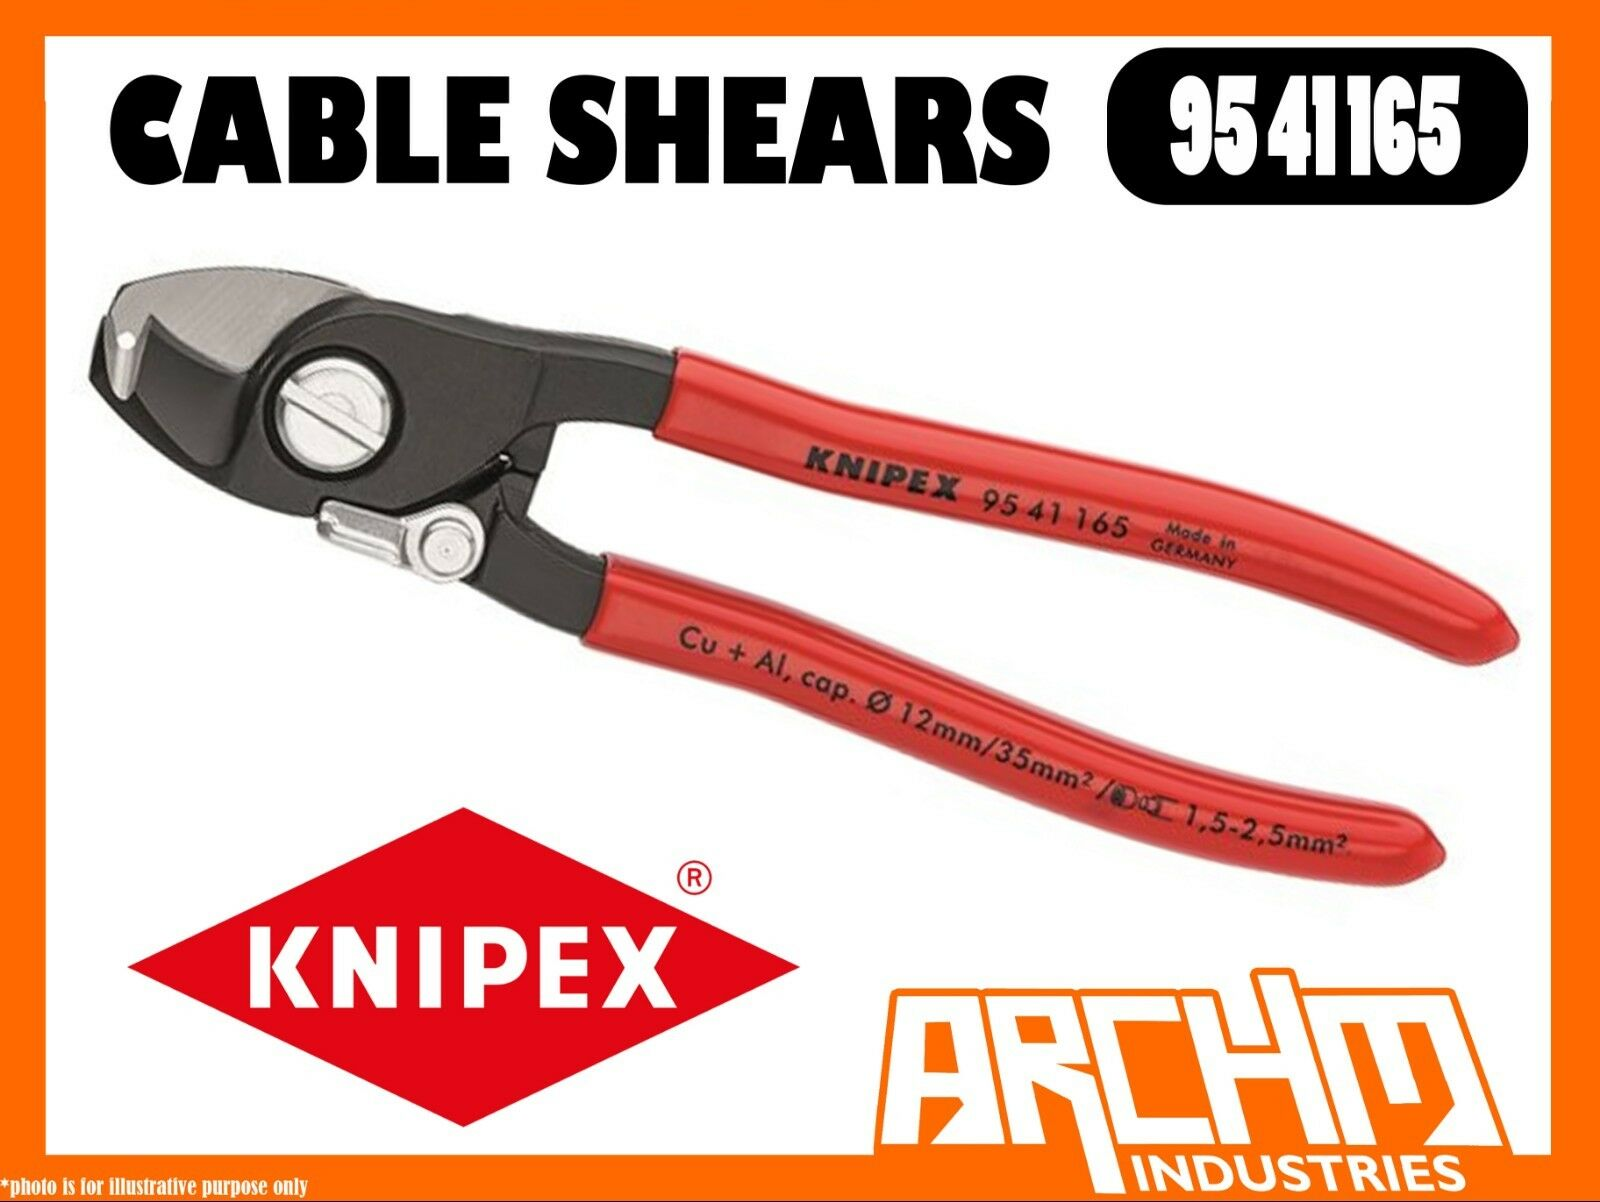 KNIPEX 9541165 - CABLE SHEARS - 165MM OPENING SPRING BOLT JOINT CUTTING HARDENED